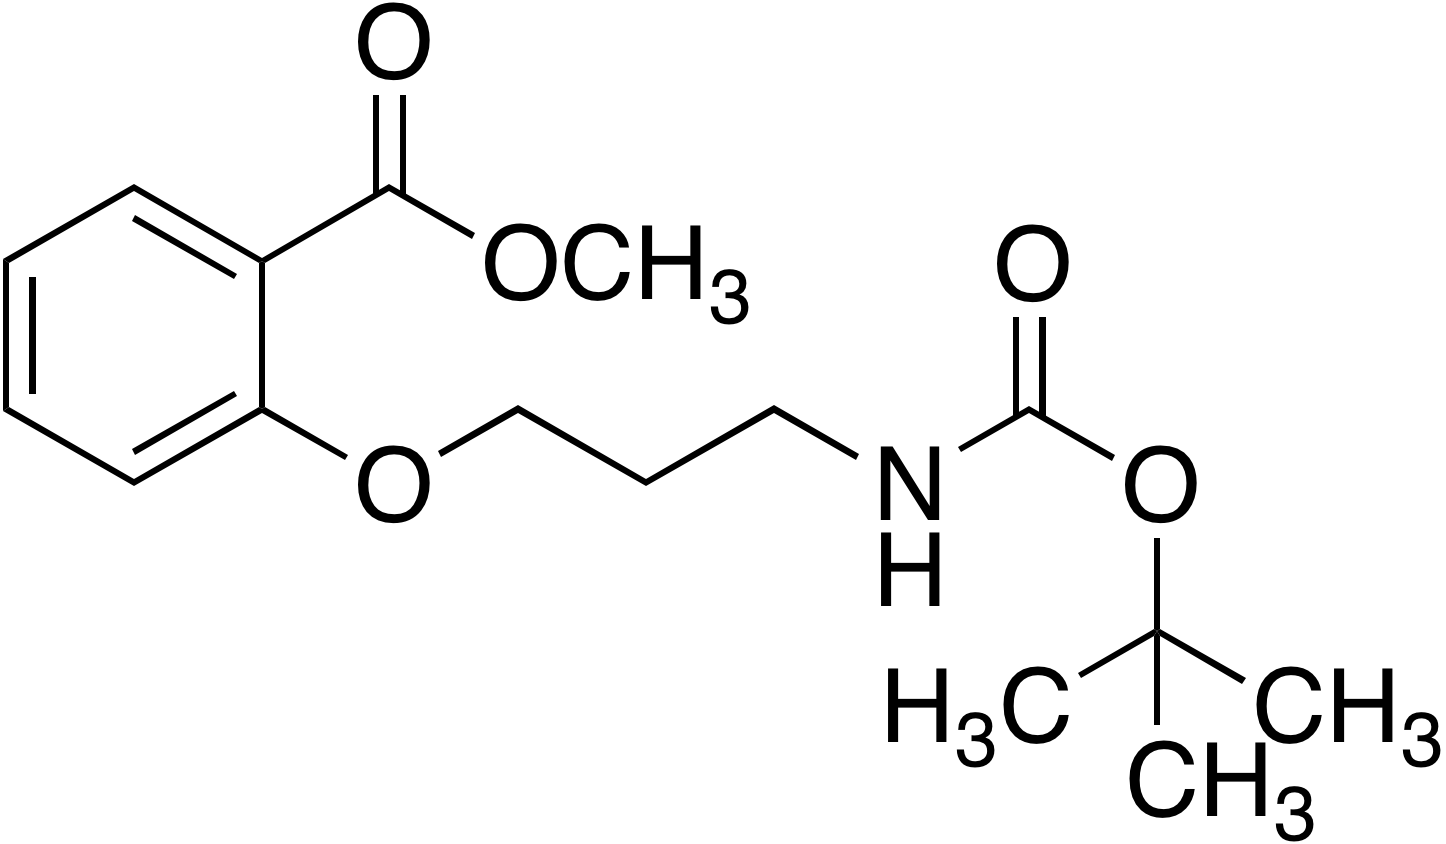 2-(3-tert-Butoxycarbonylaminopropoxy)benzoic acid methyl ester